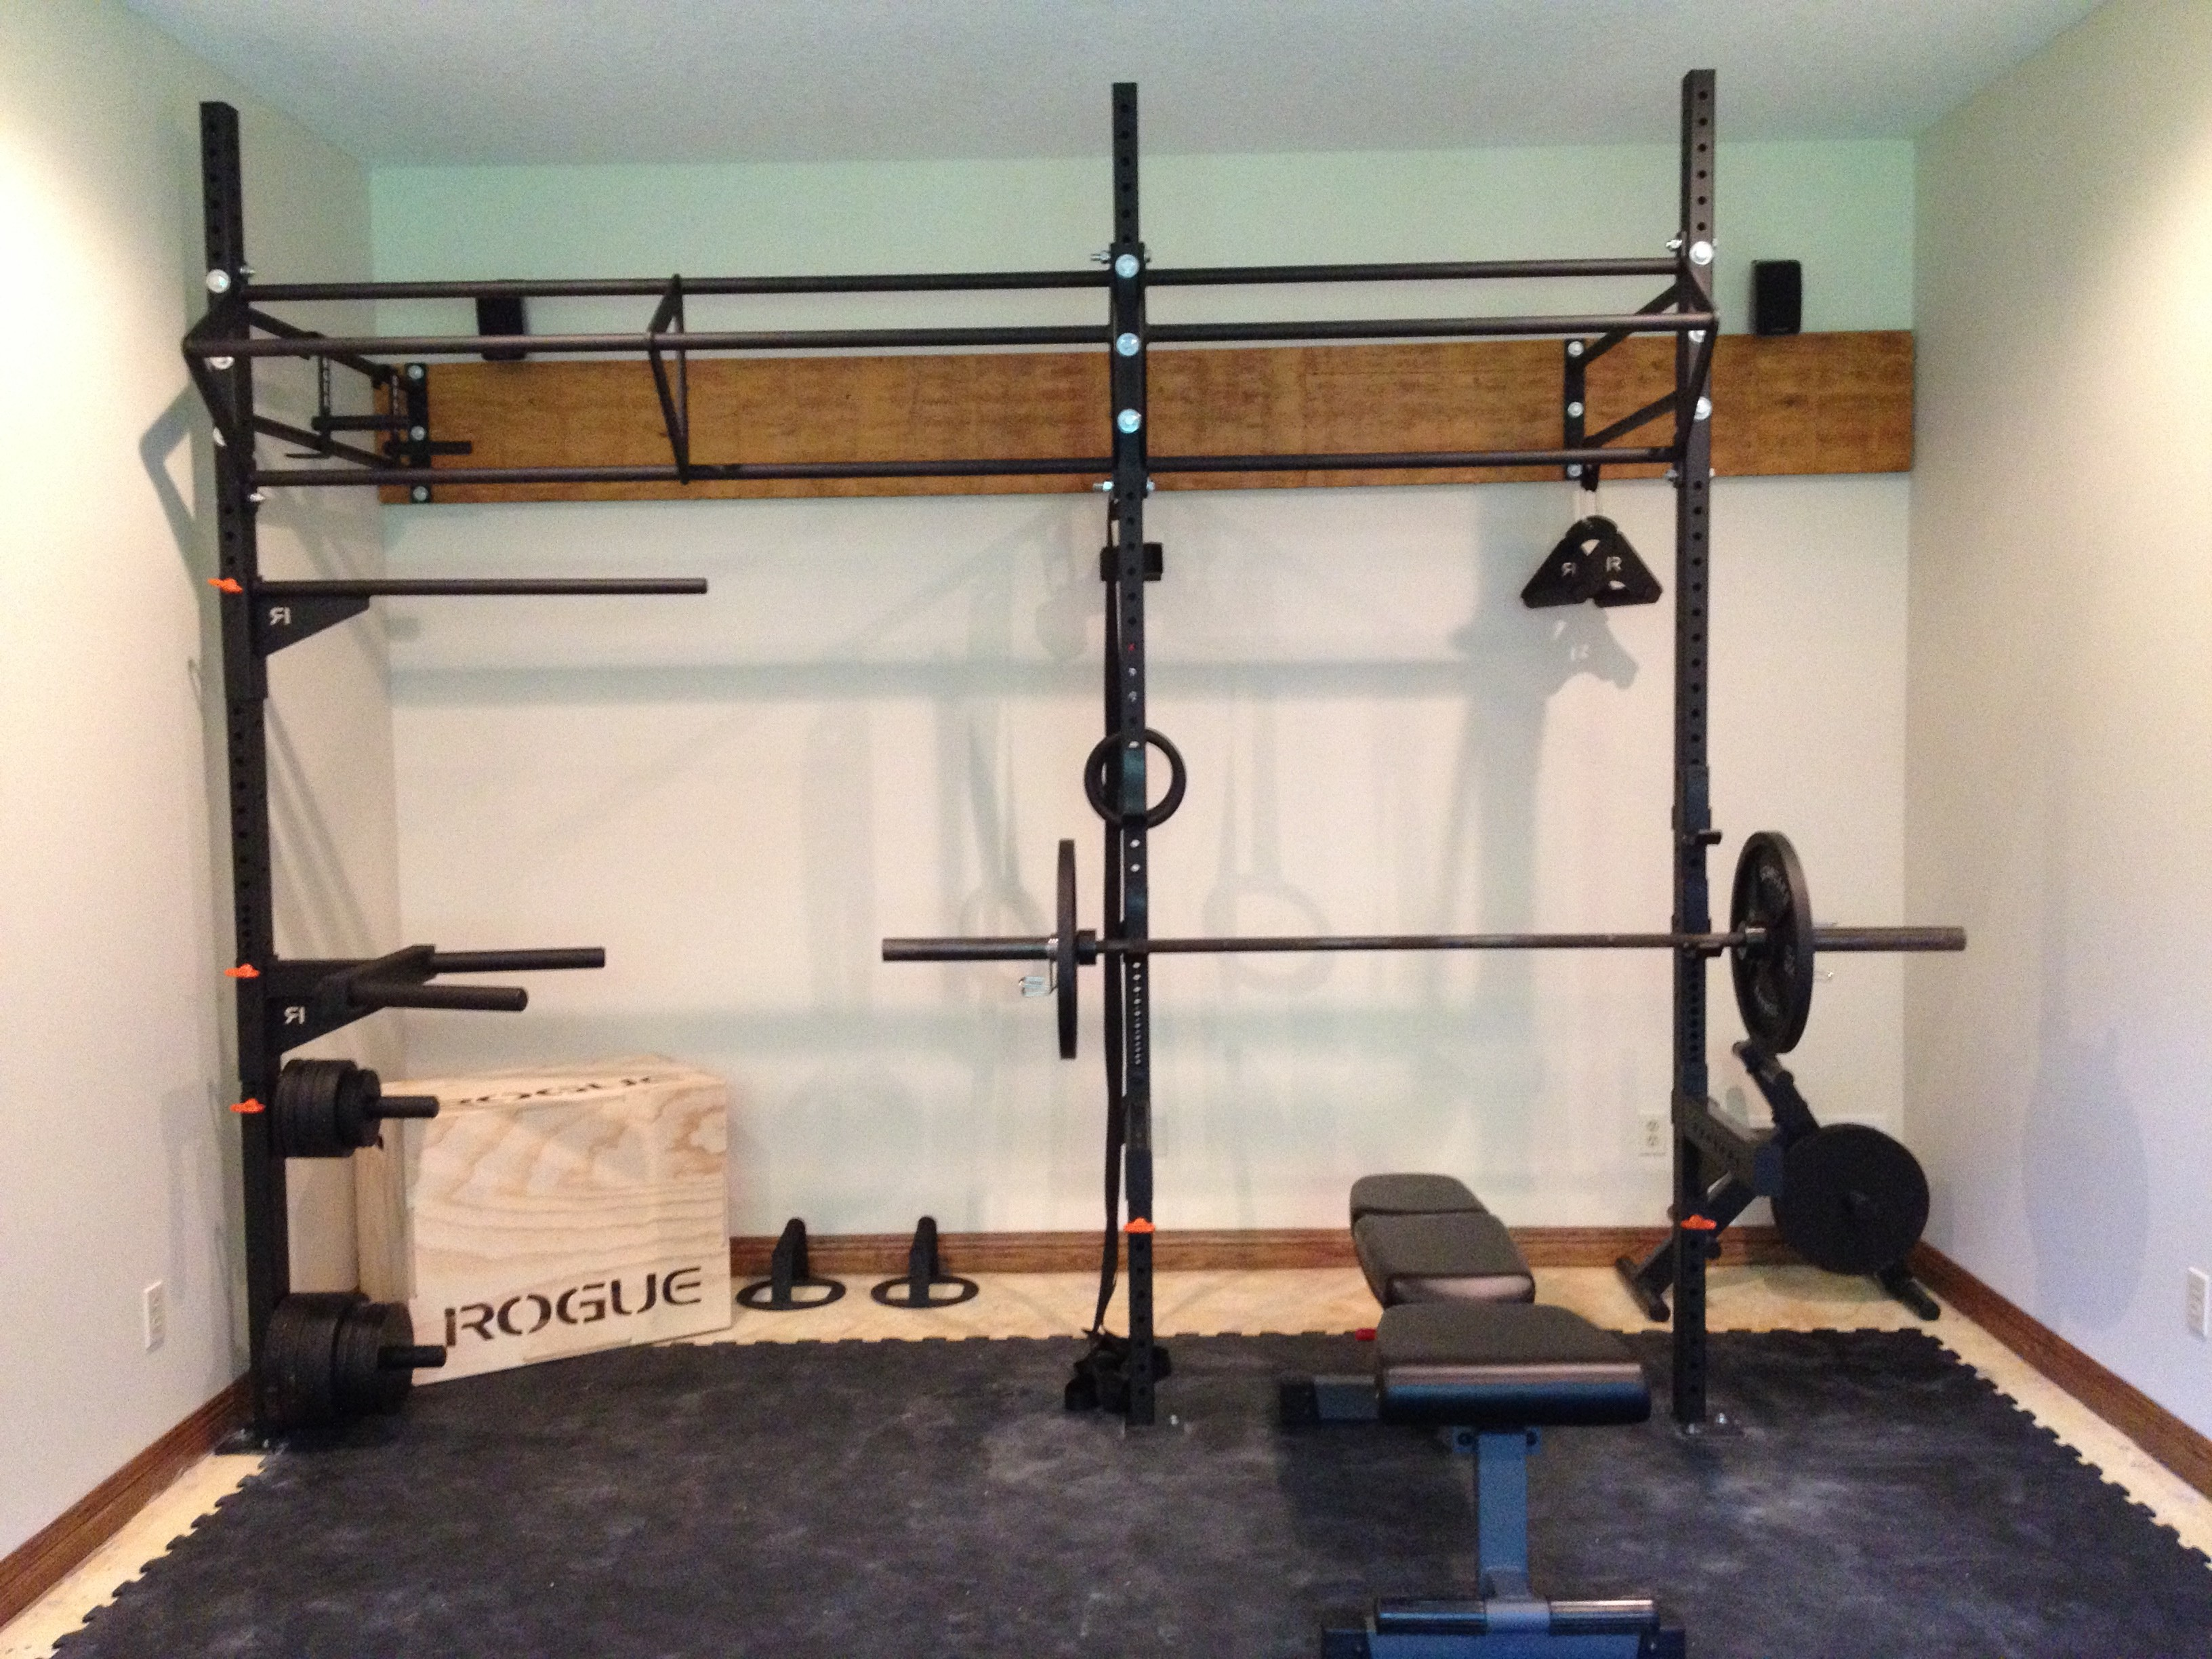 Rogue fitness home gym all photos fitness tmimages